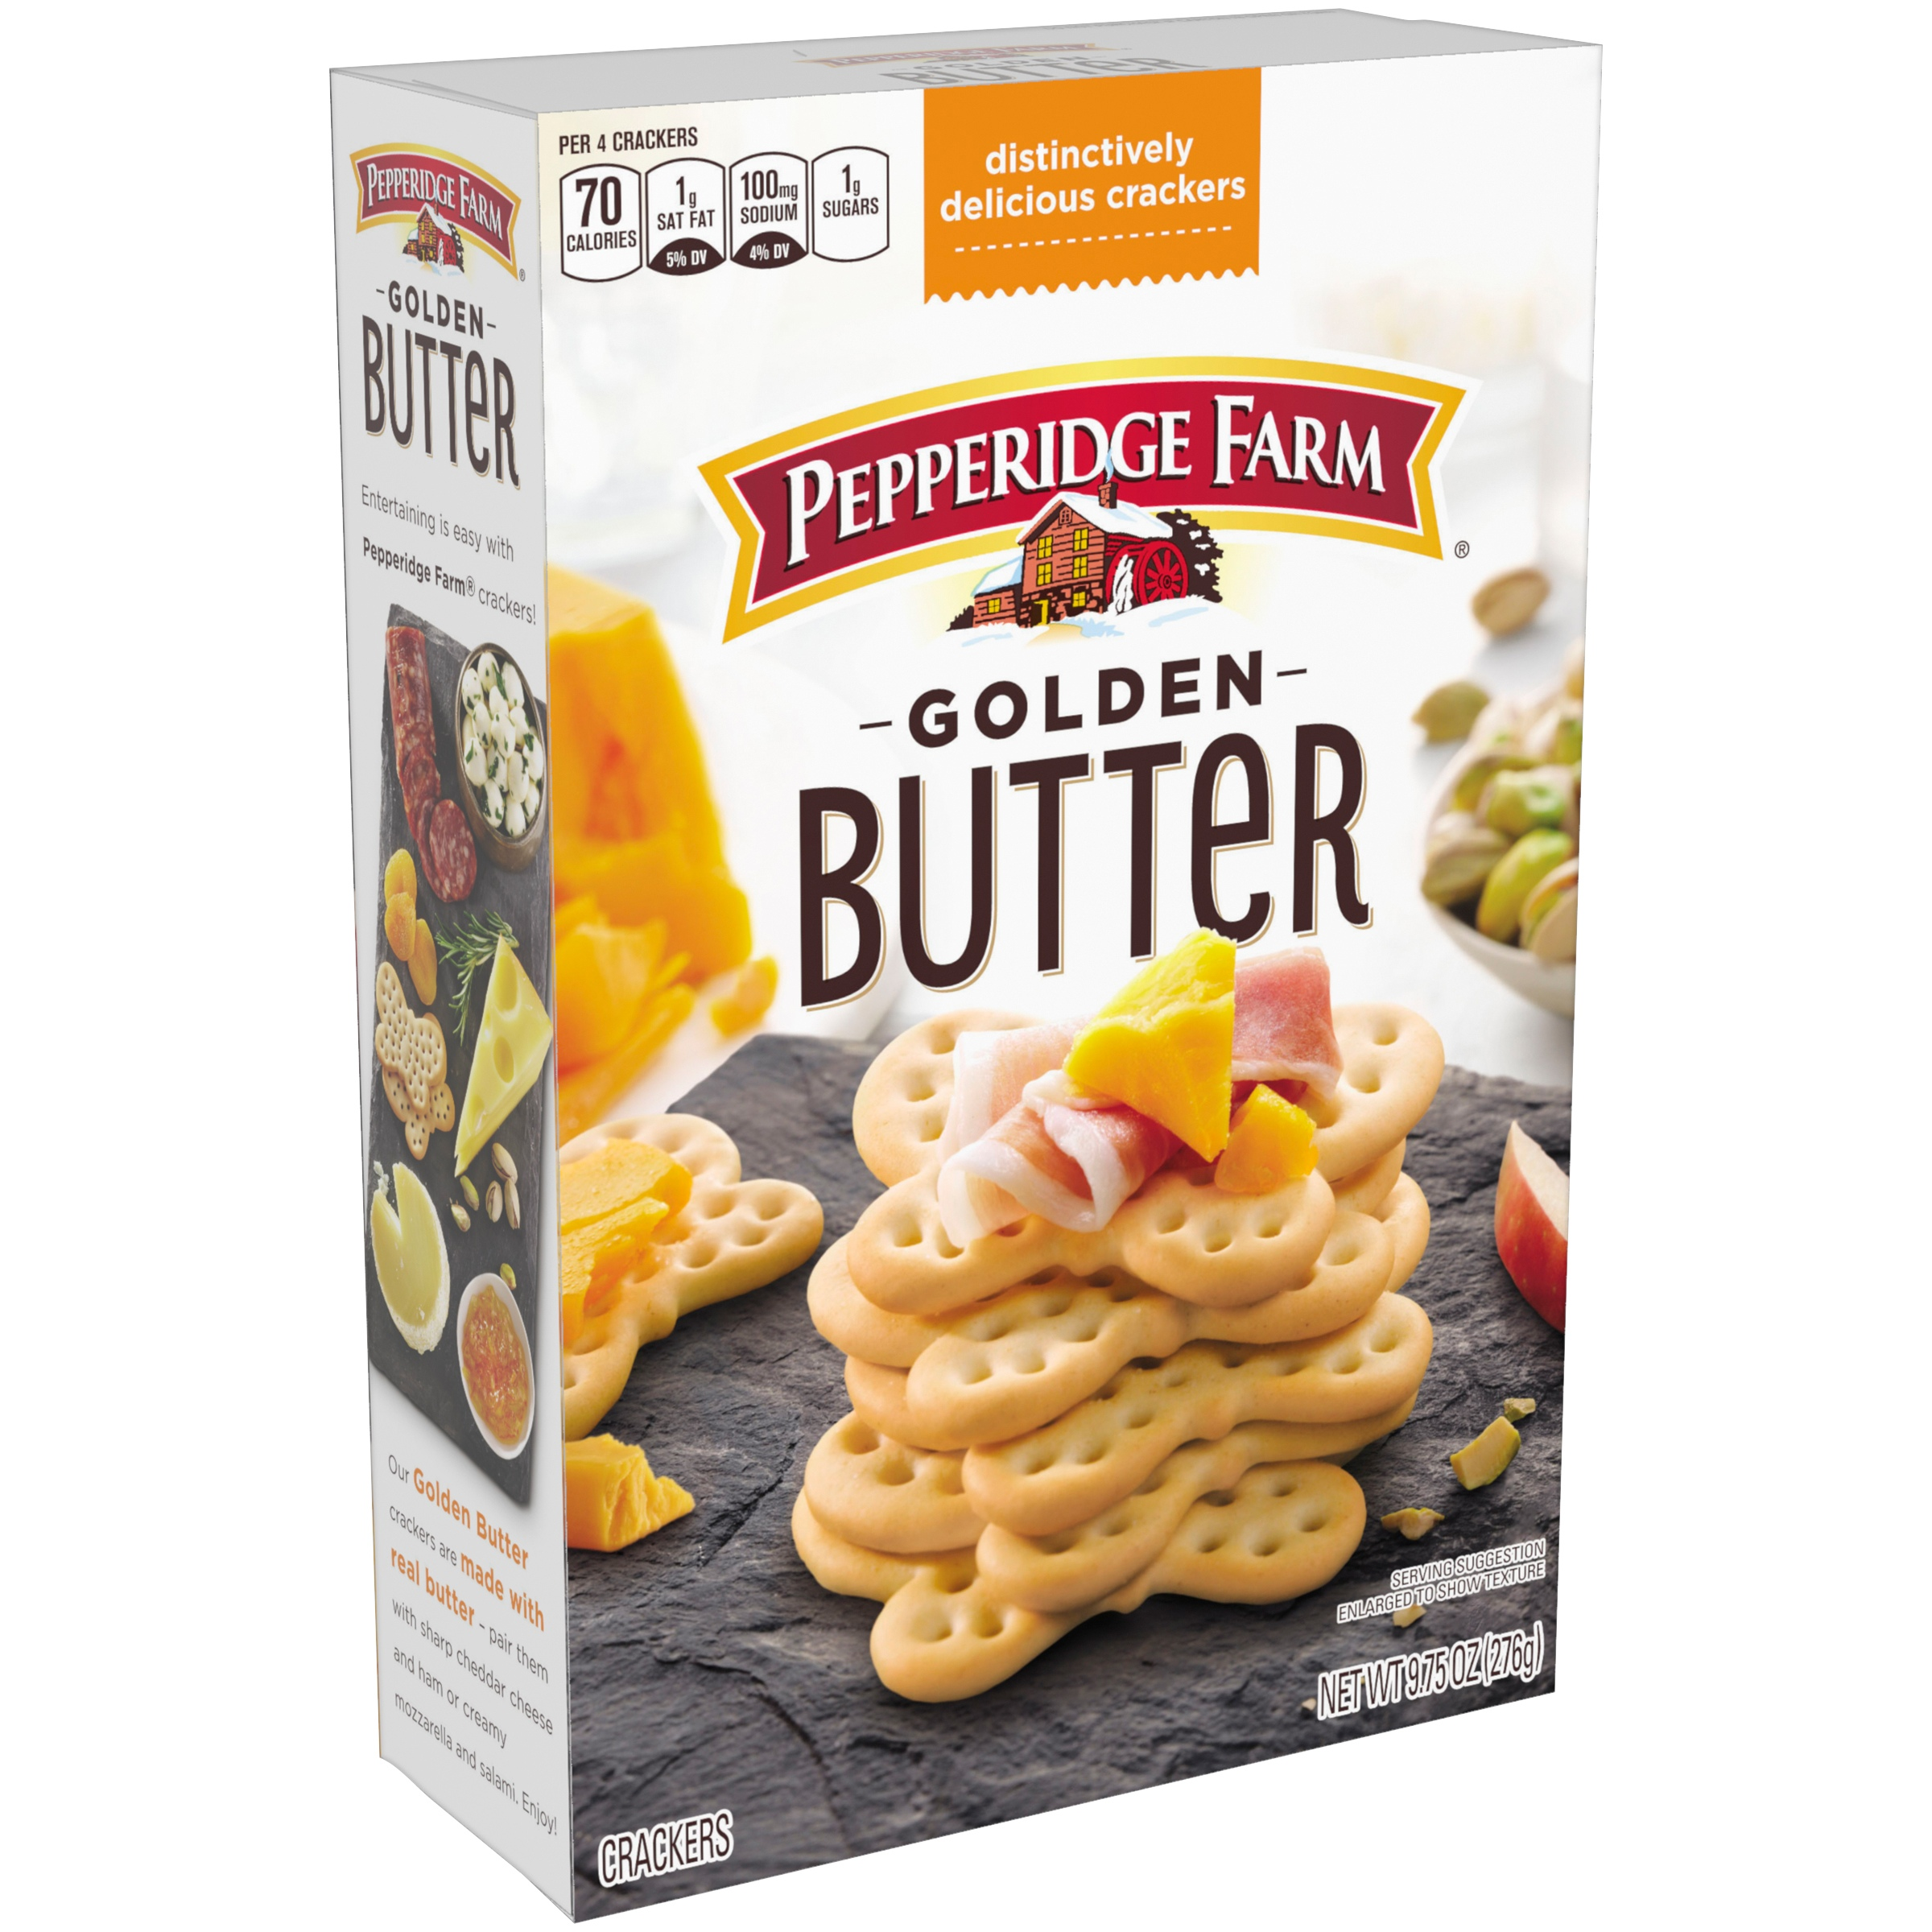 (2 Pack) Pepperidge Farm Golden Butter Crackers, 9.75 oz. Box